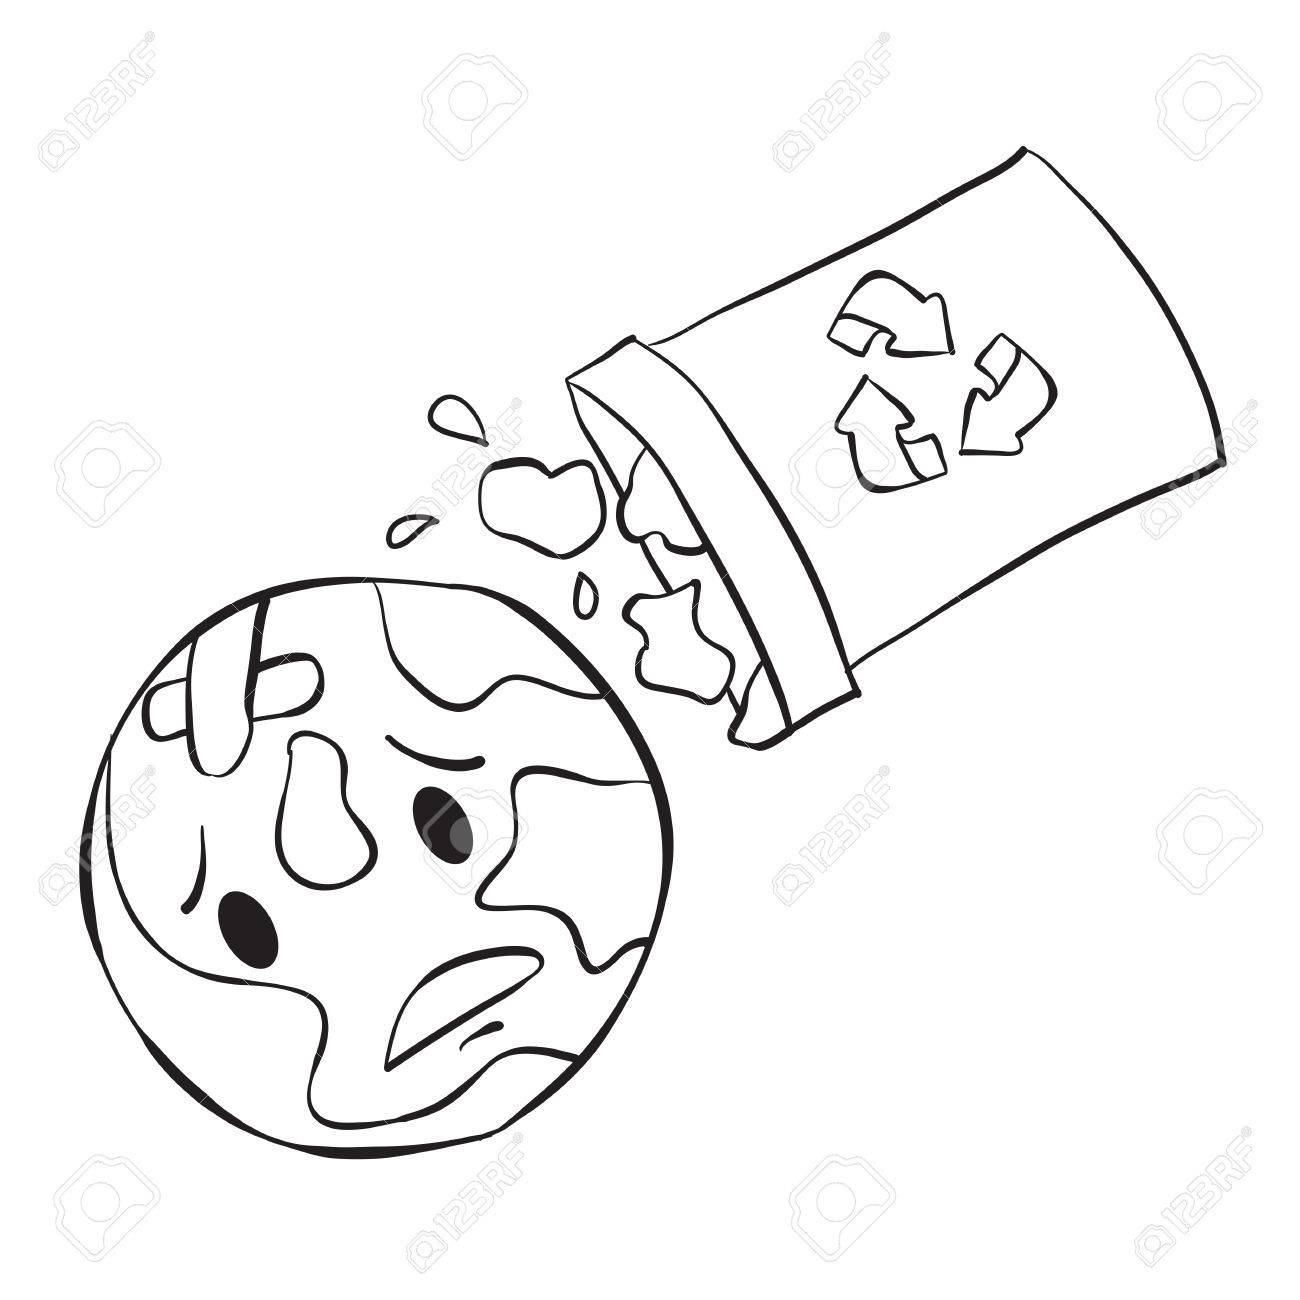 1300x1300 Doodle Of Trash Bad Environment Royalty Free Cliparts, Vectors